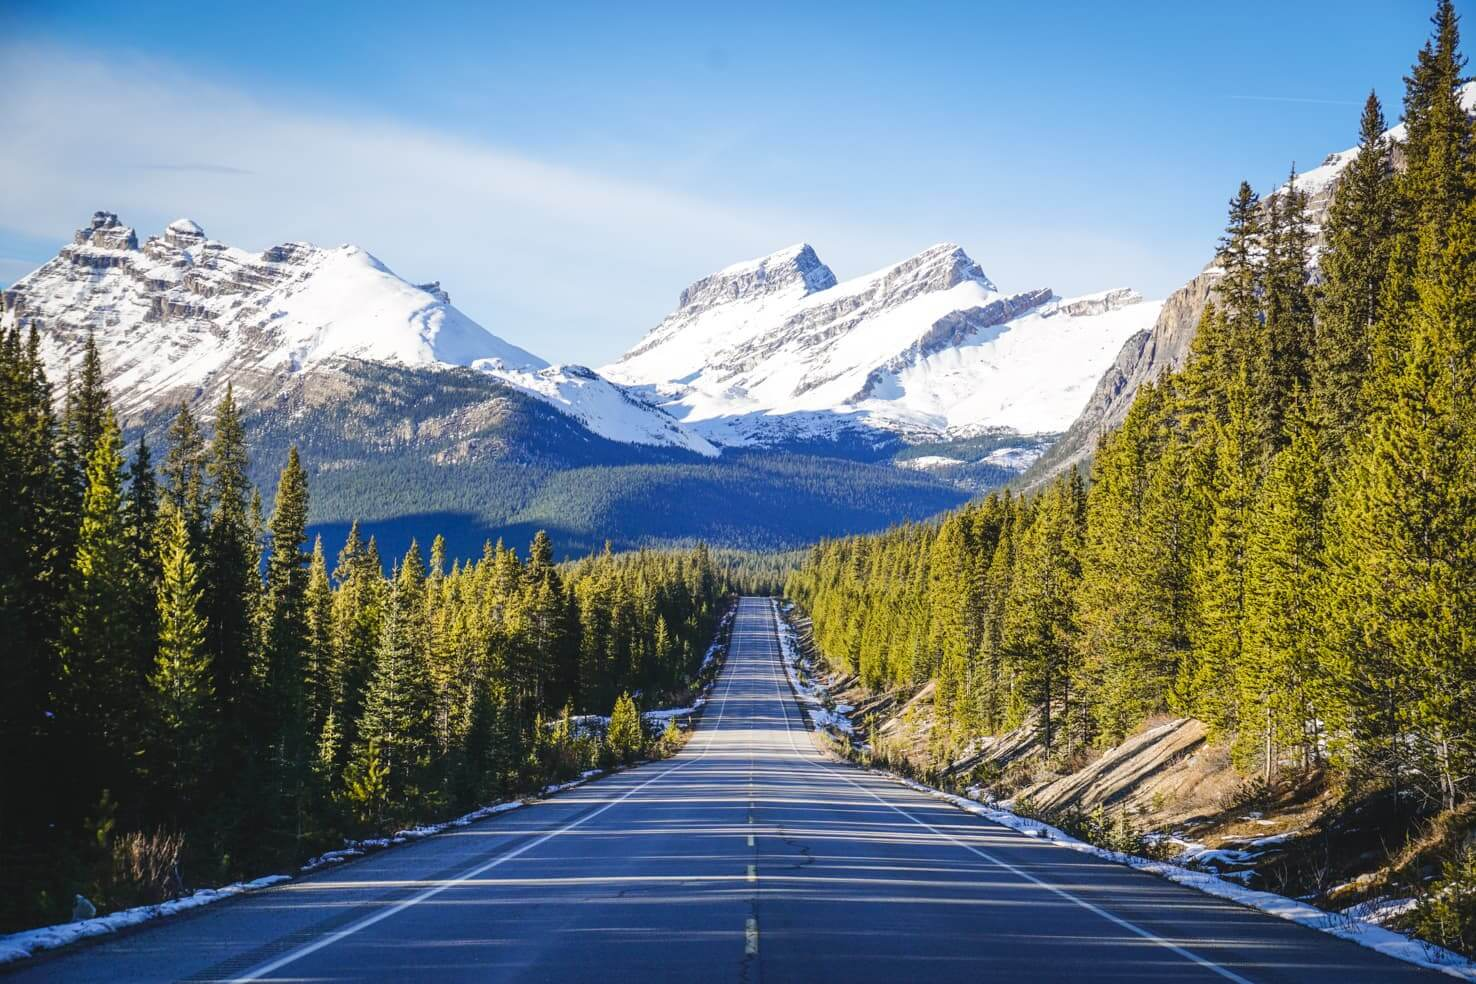 Western Canada road trip from Calgary to Vancouver - road trip on Icefields Parkway